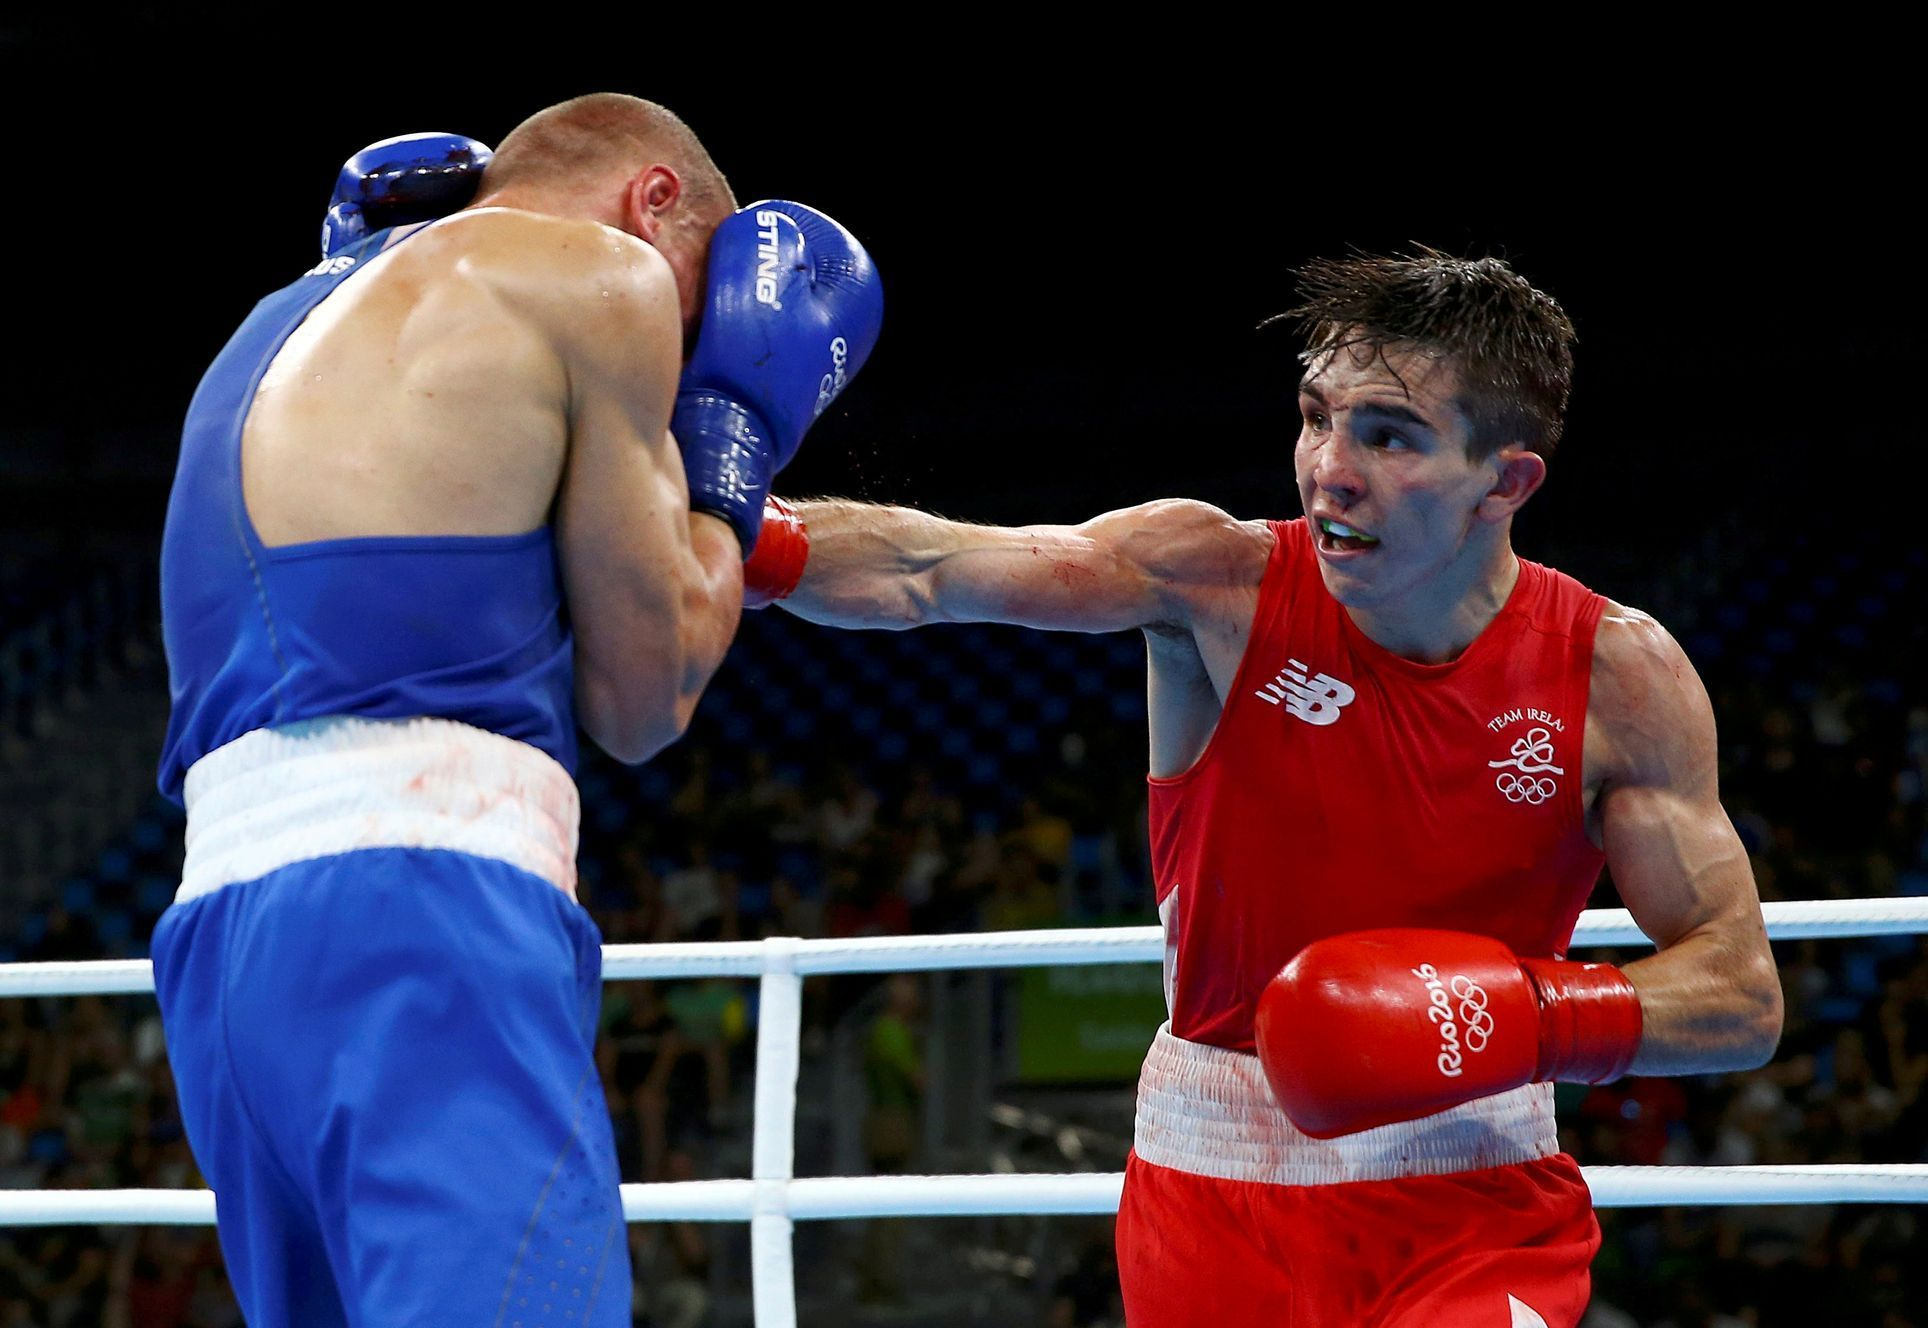 FILE PHOTO: Michael Conlan of Ireland and Vladimir Nikitin of Russia compete in Olympic boxing in Rio de Janeiro, Brazil - 16/08/2016